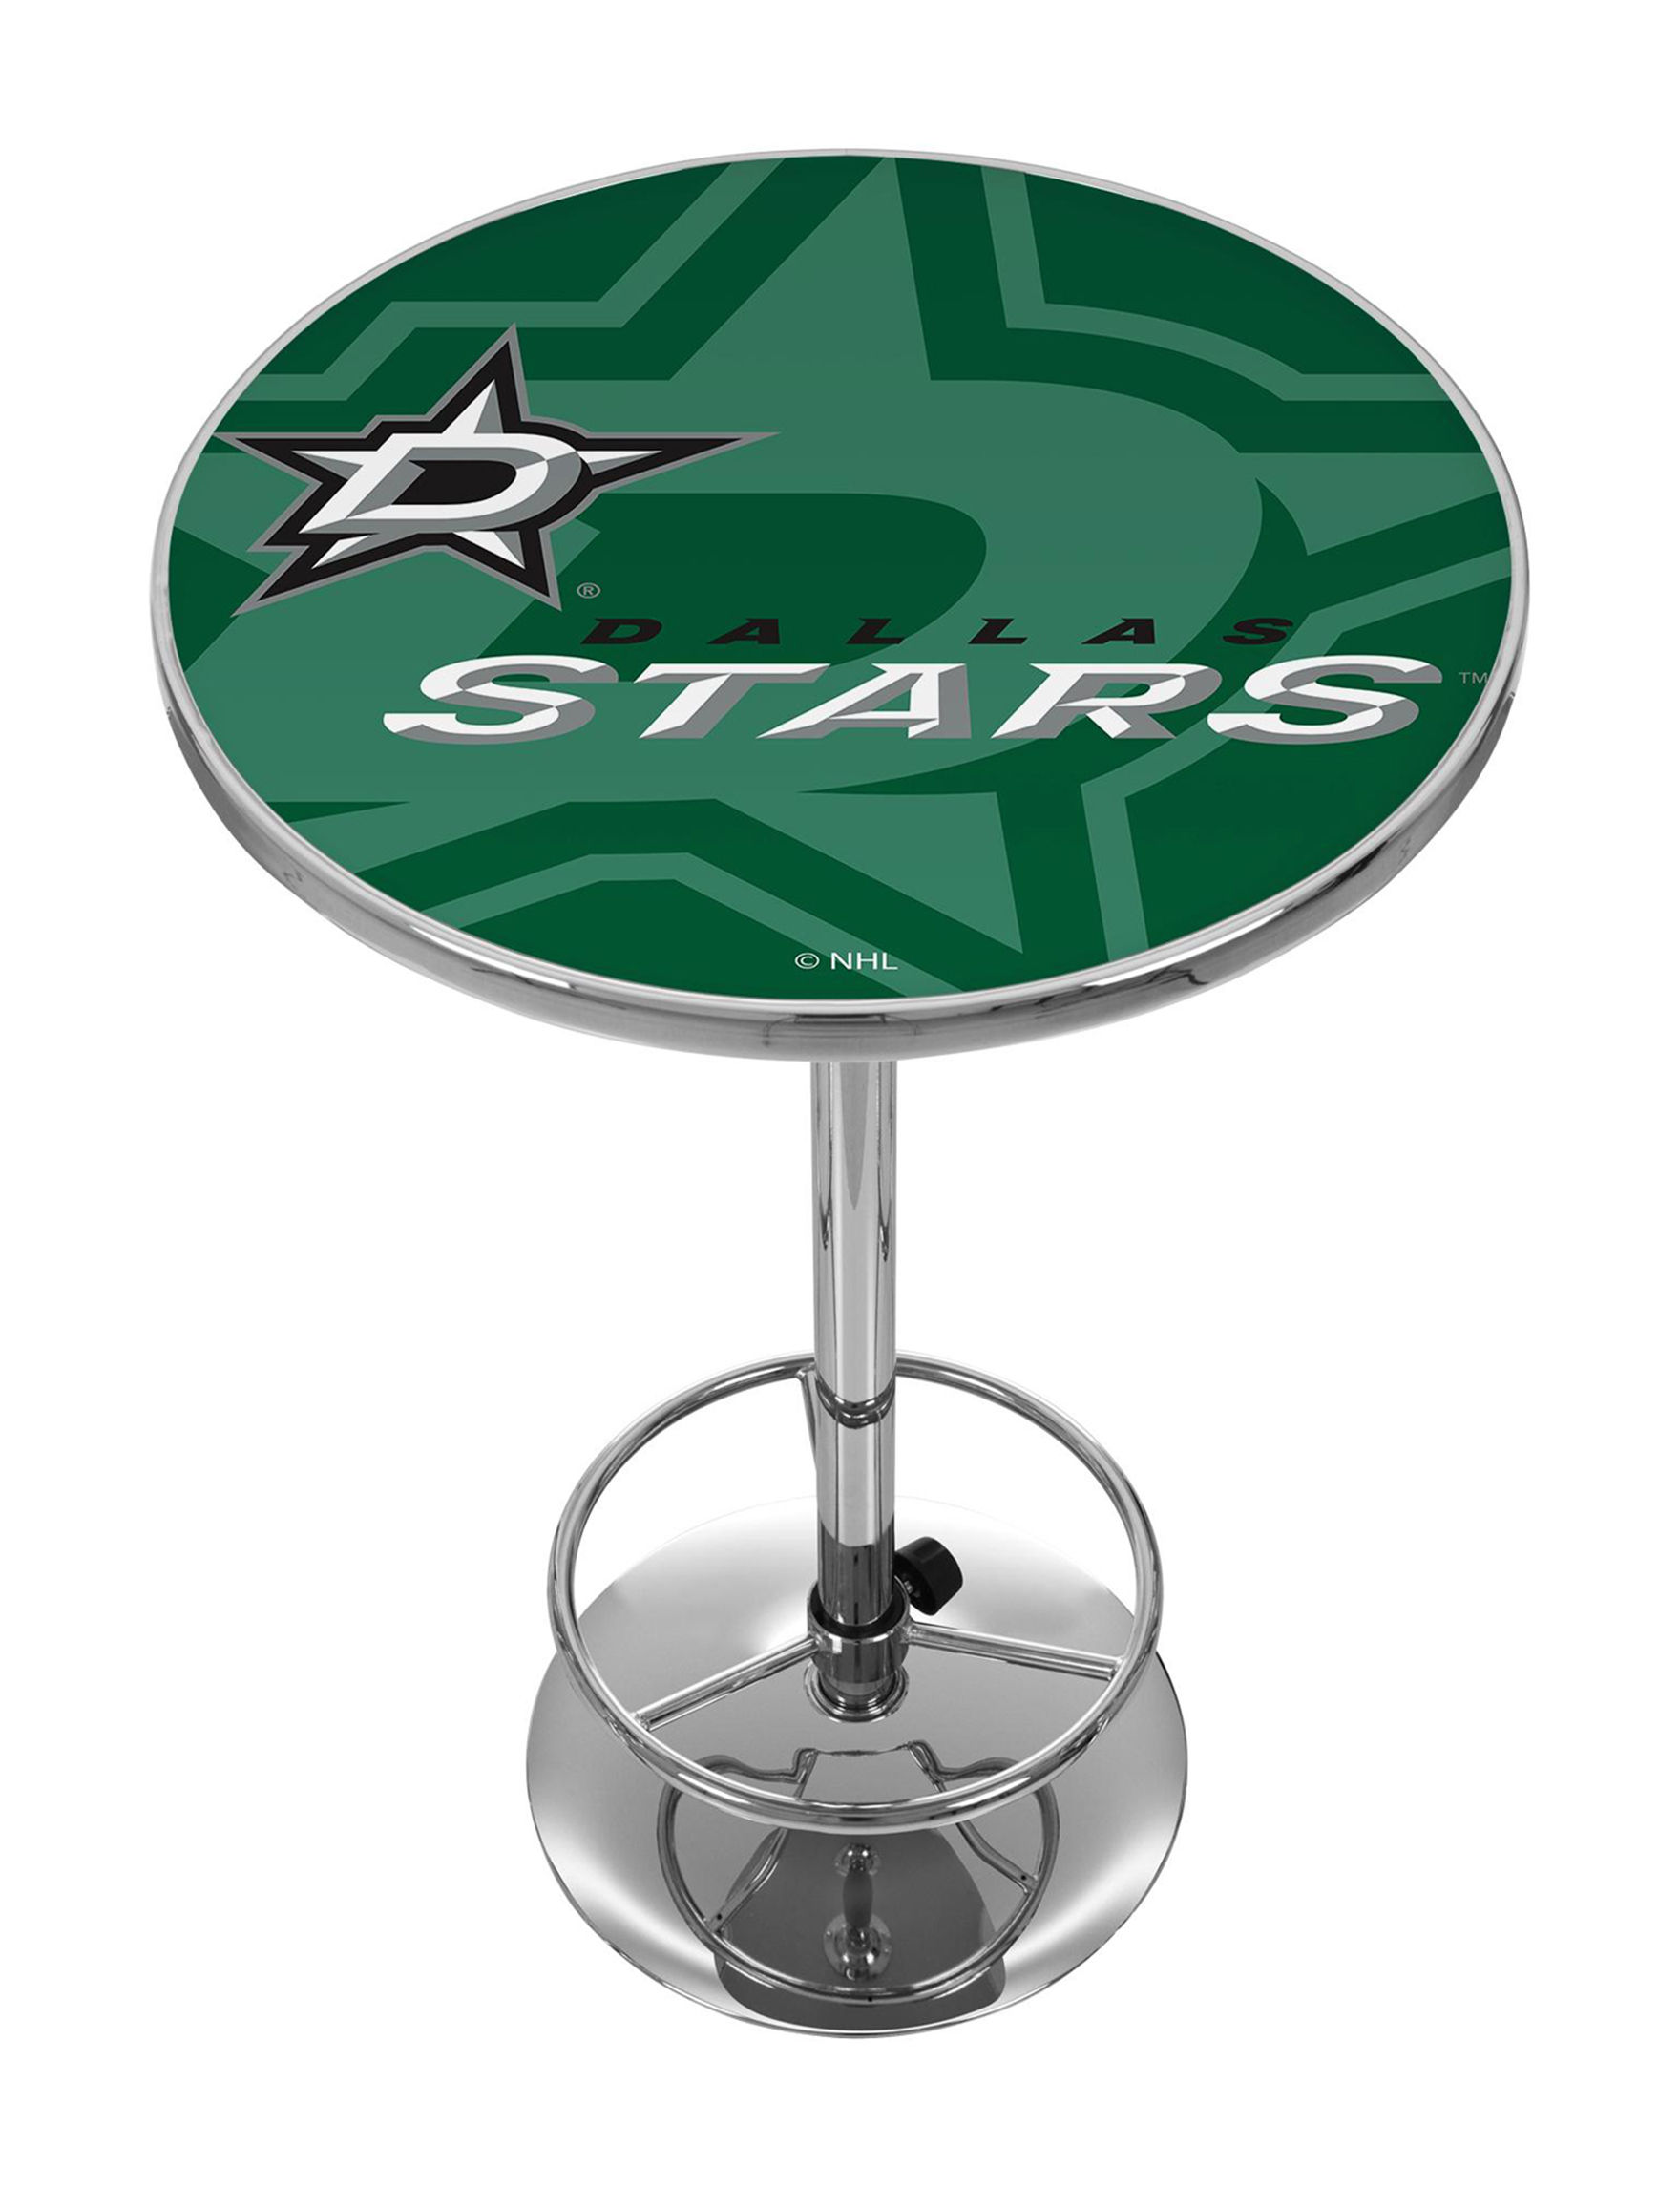 NHL Green / White Dining Tables Kitchen & Dining Furniture